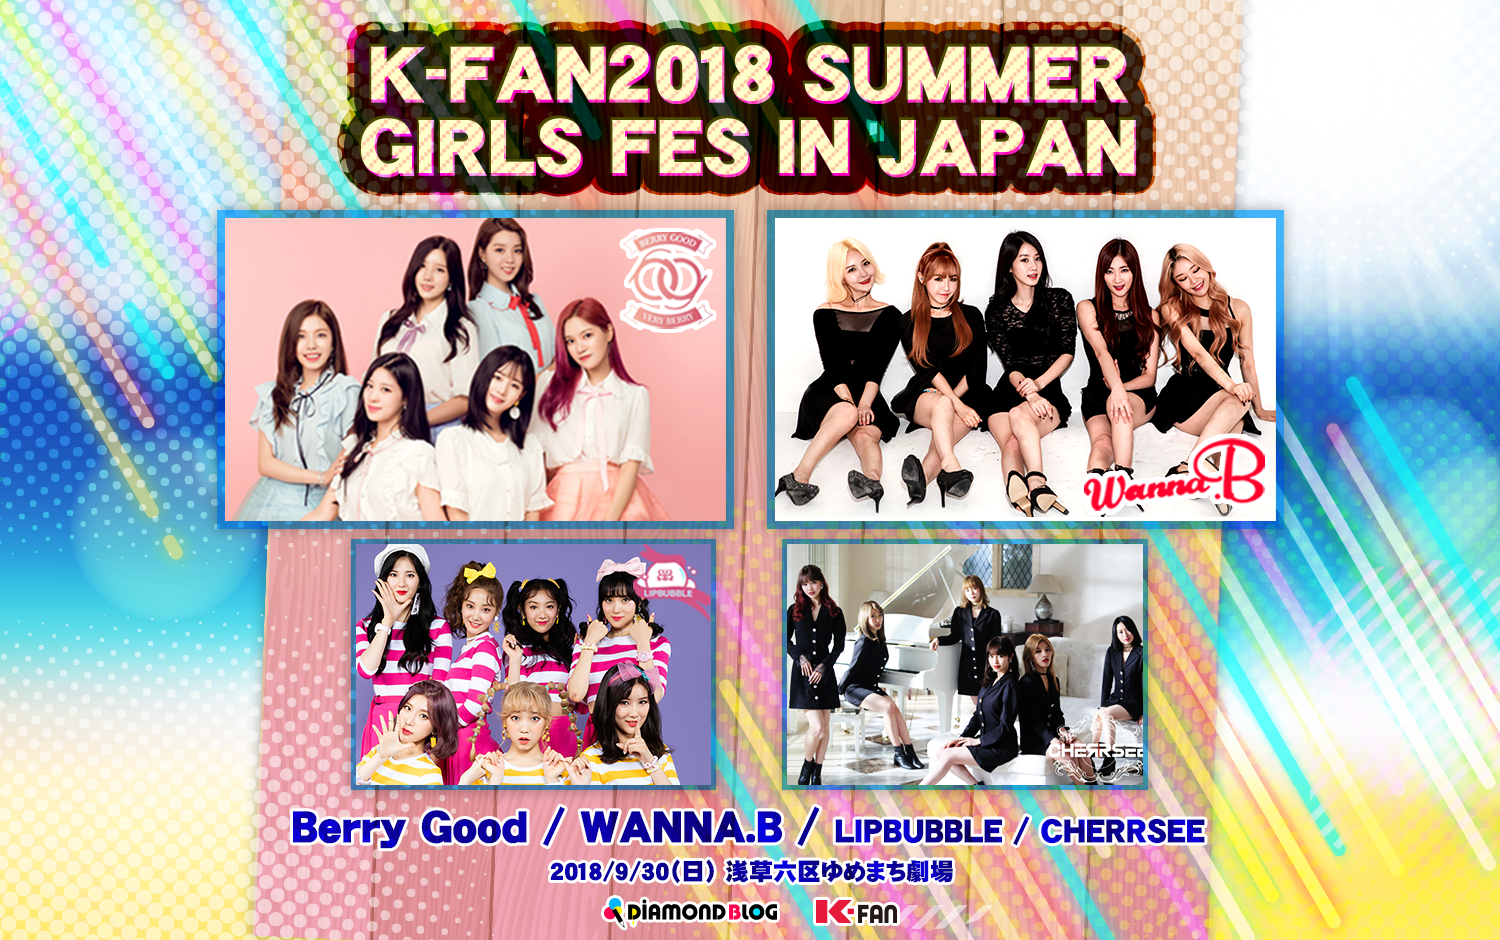 9/30(日) K-FAN 2018 SUMMER GIRLS FES IN JAPAN(出演:BERRY GOOD / Wanna.B / LIPBUBBLE / CHERRSEE)